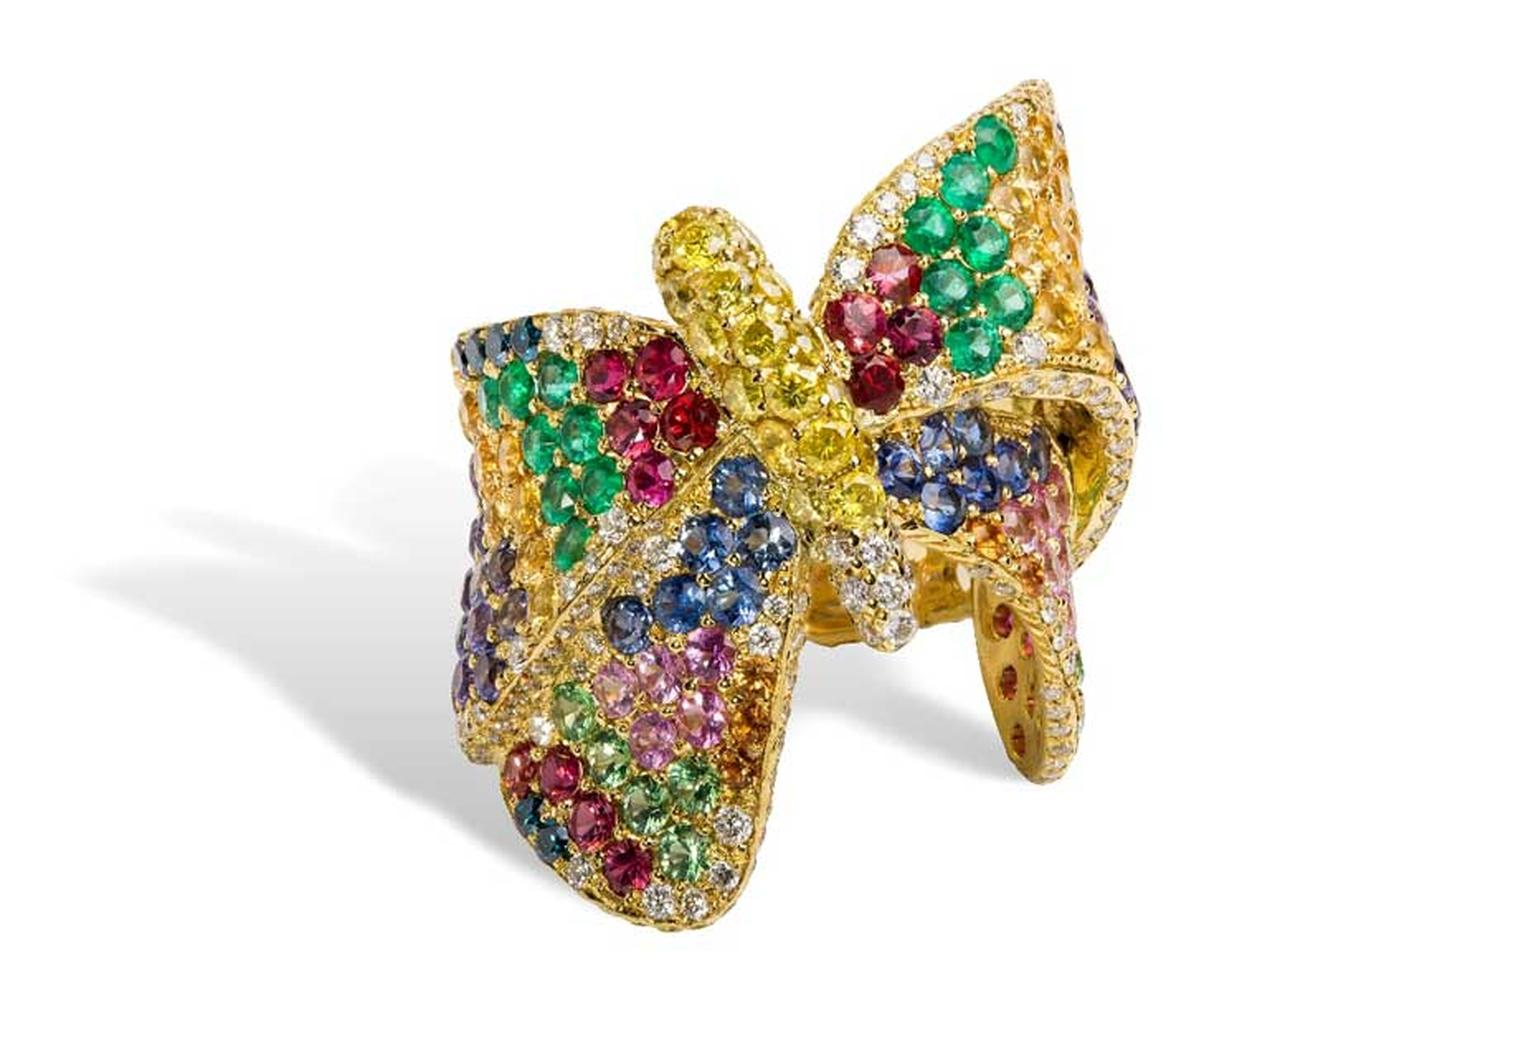 Rosior Butterfly ring with a mix of white diamonds, yellow diamonds, blue diamonds, sapphires, rubies and emeralds.